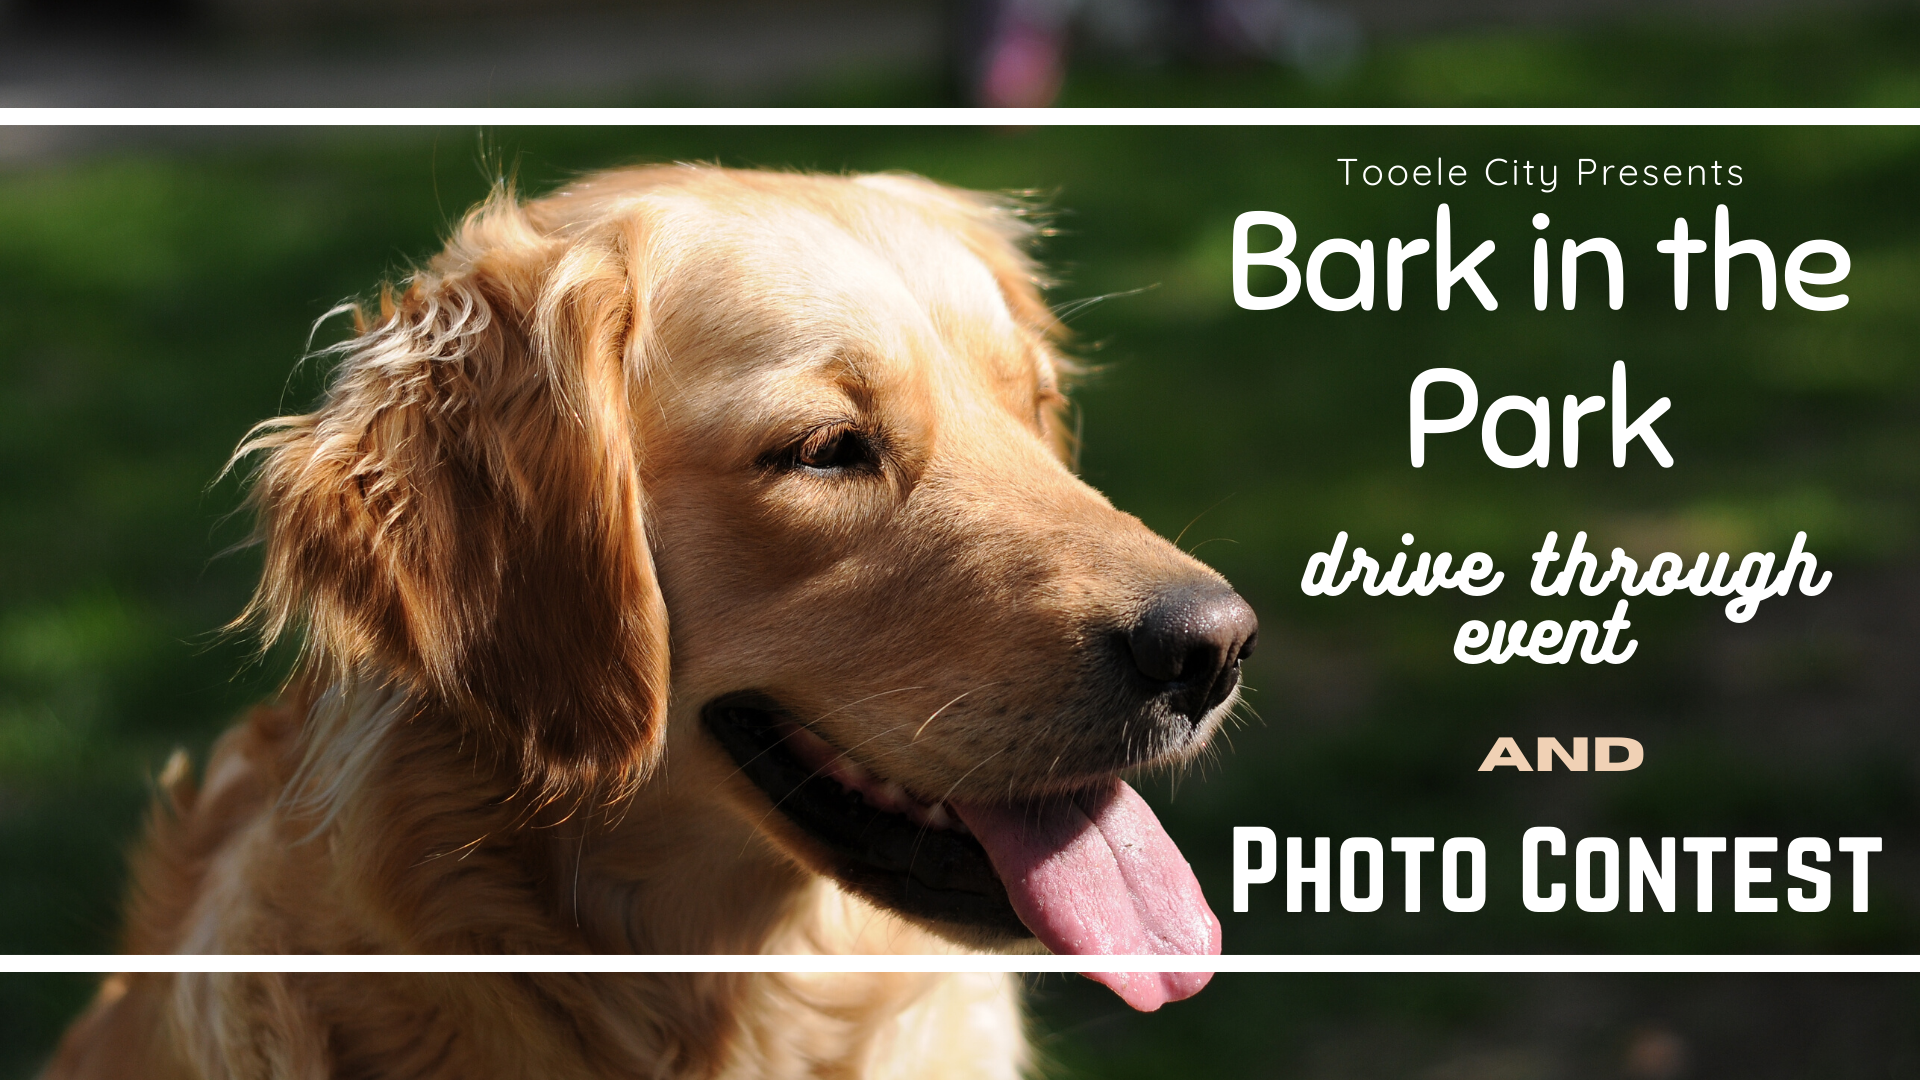 Bark in the Park @ Tooele City Hall